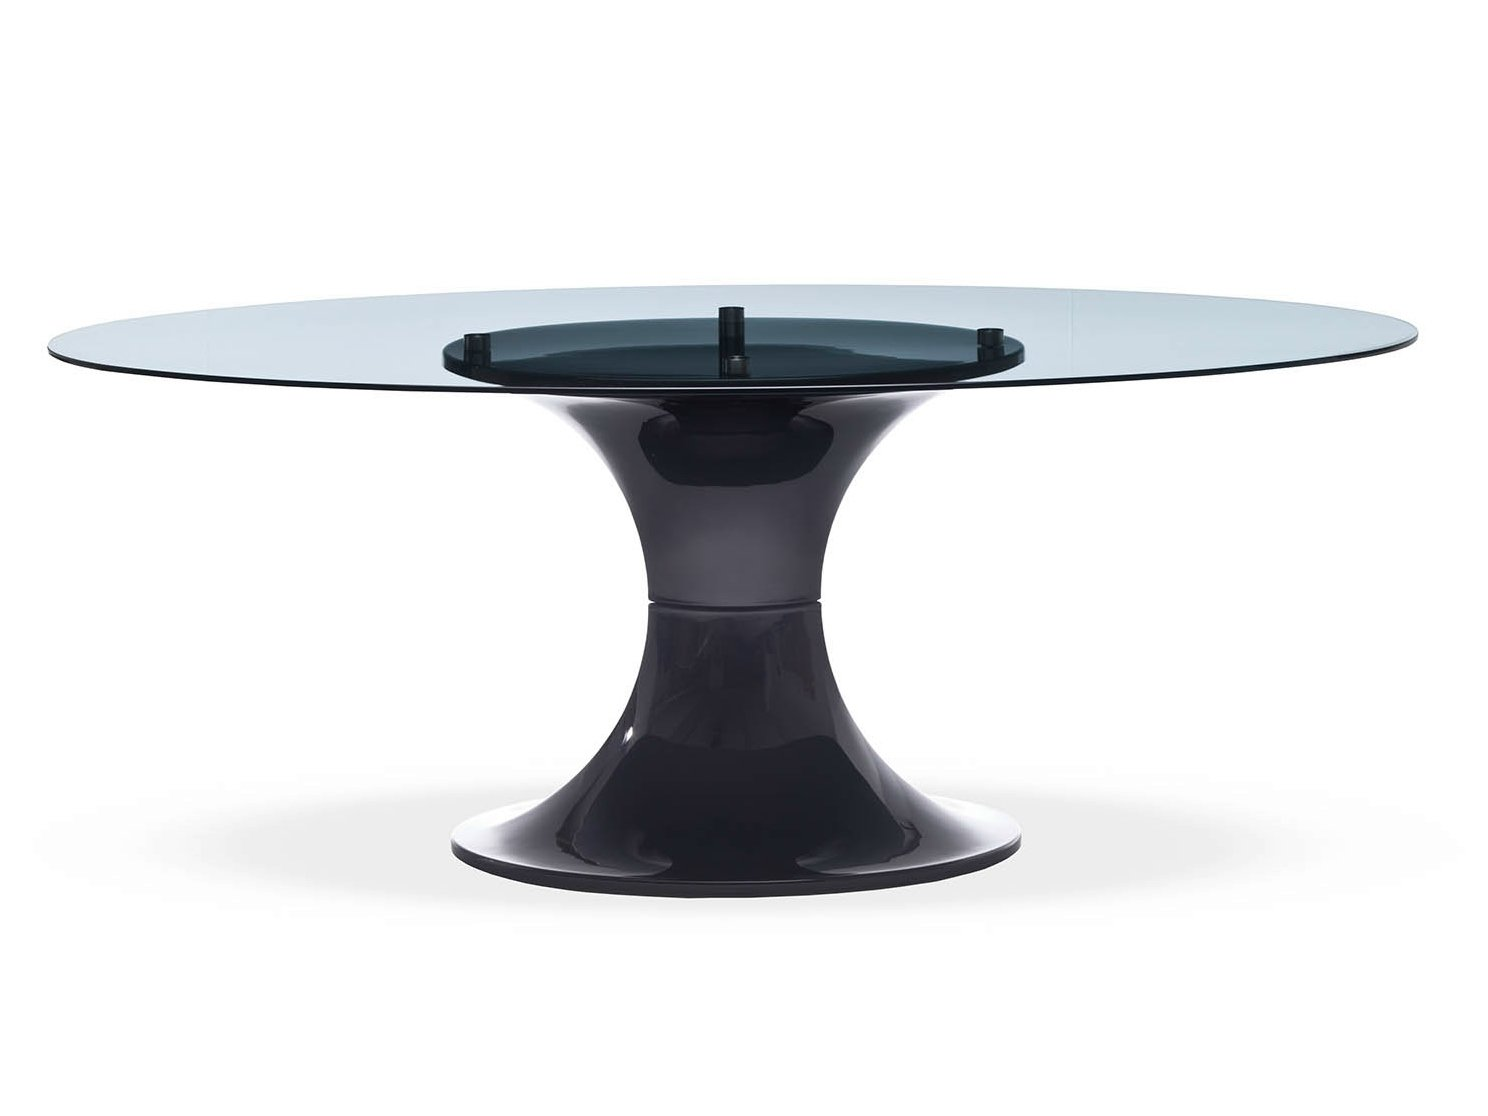 polycarbonate (pc) tables | archiproducts